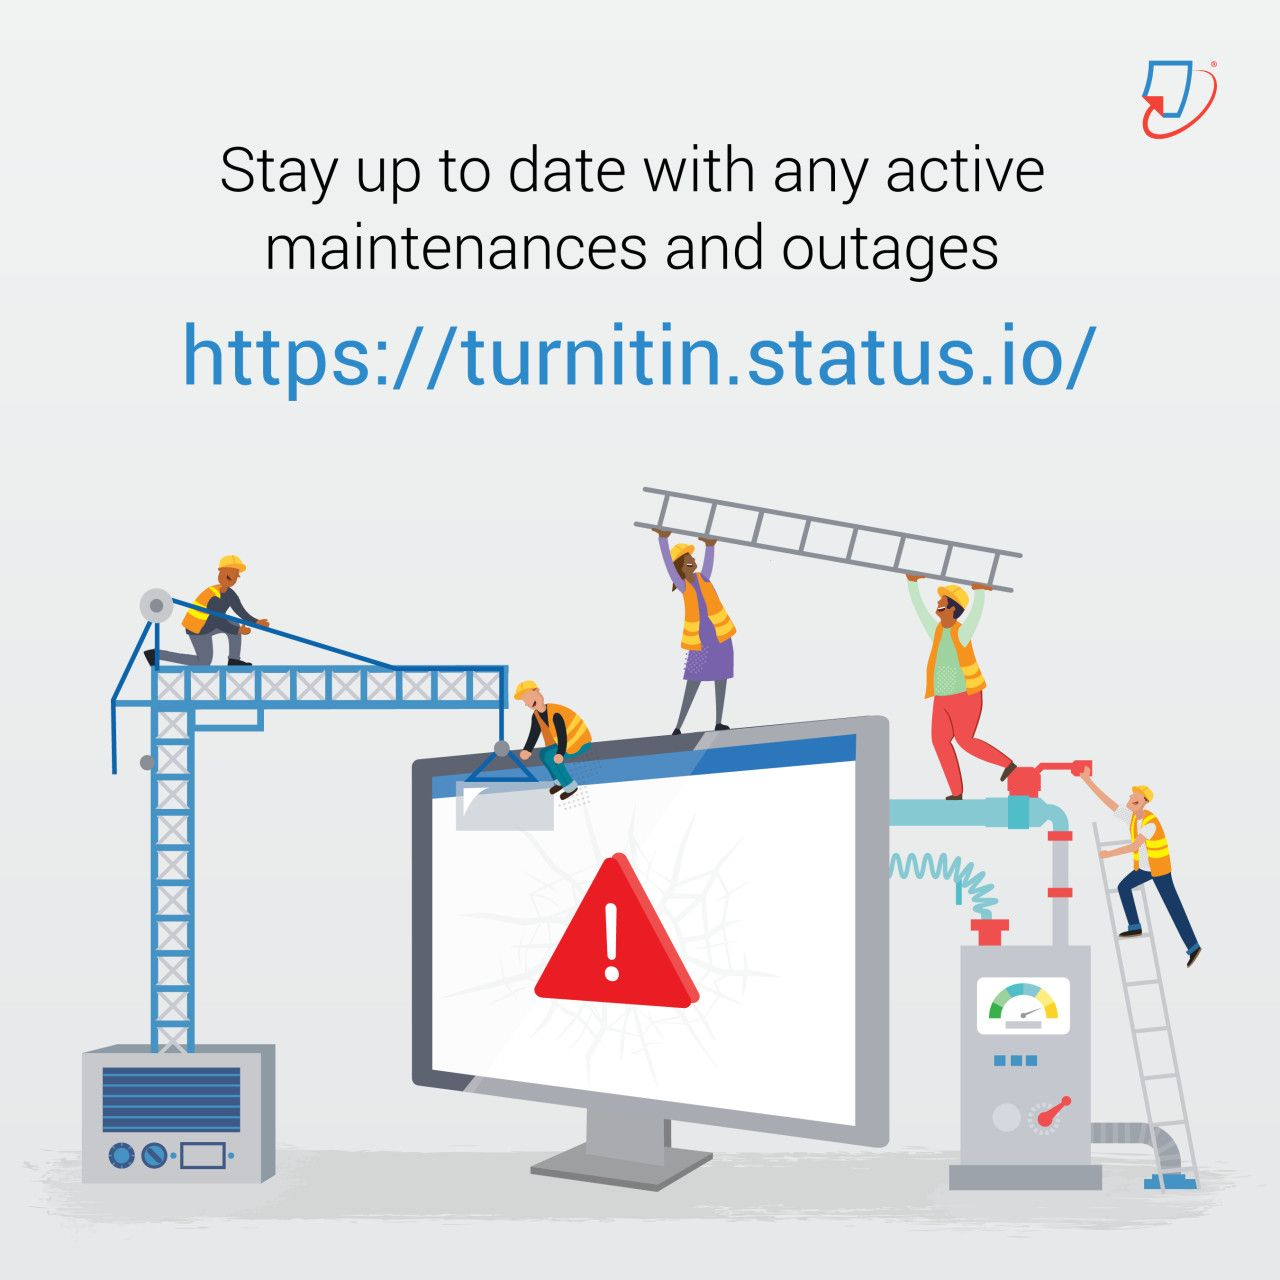 Subscribe To Stay Up To Date With Any Active Maintenances